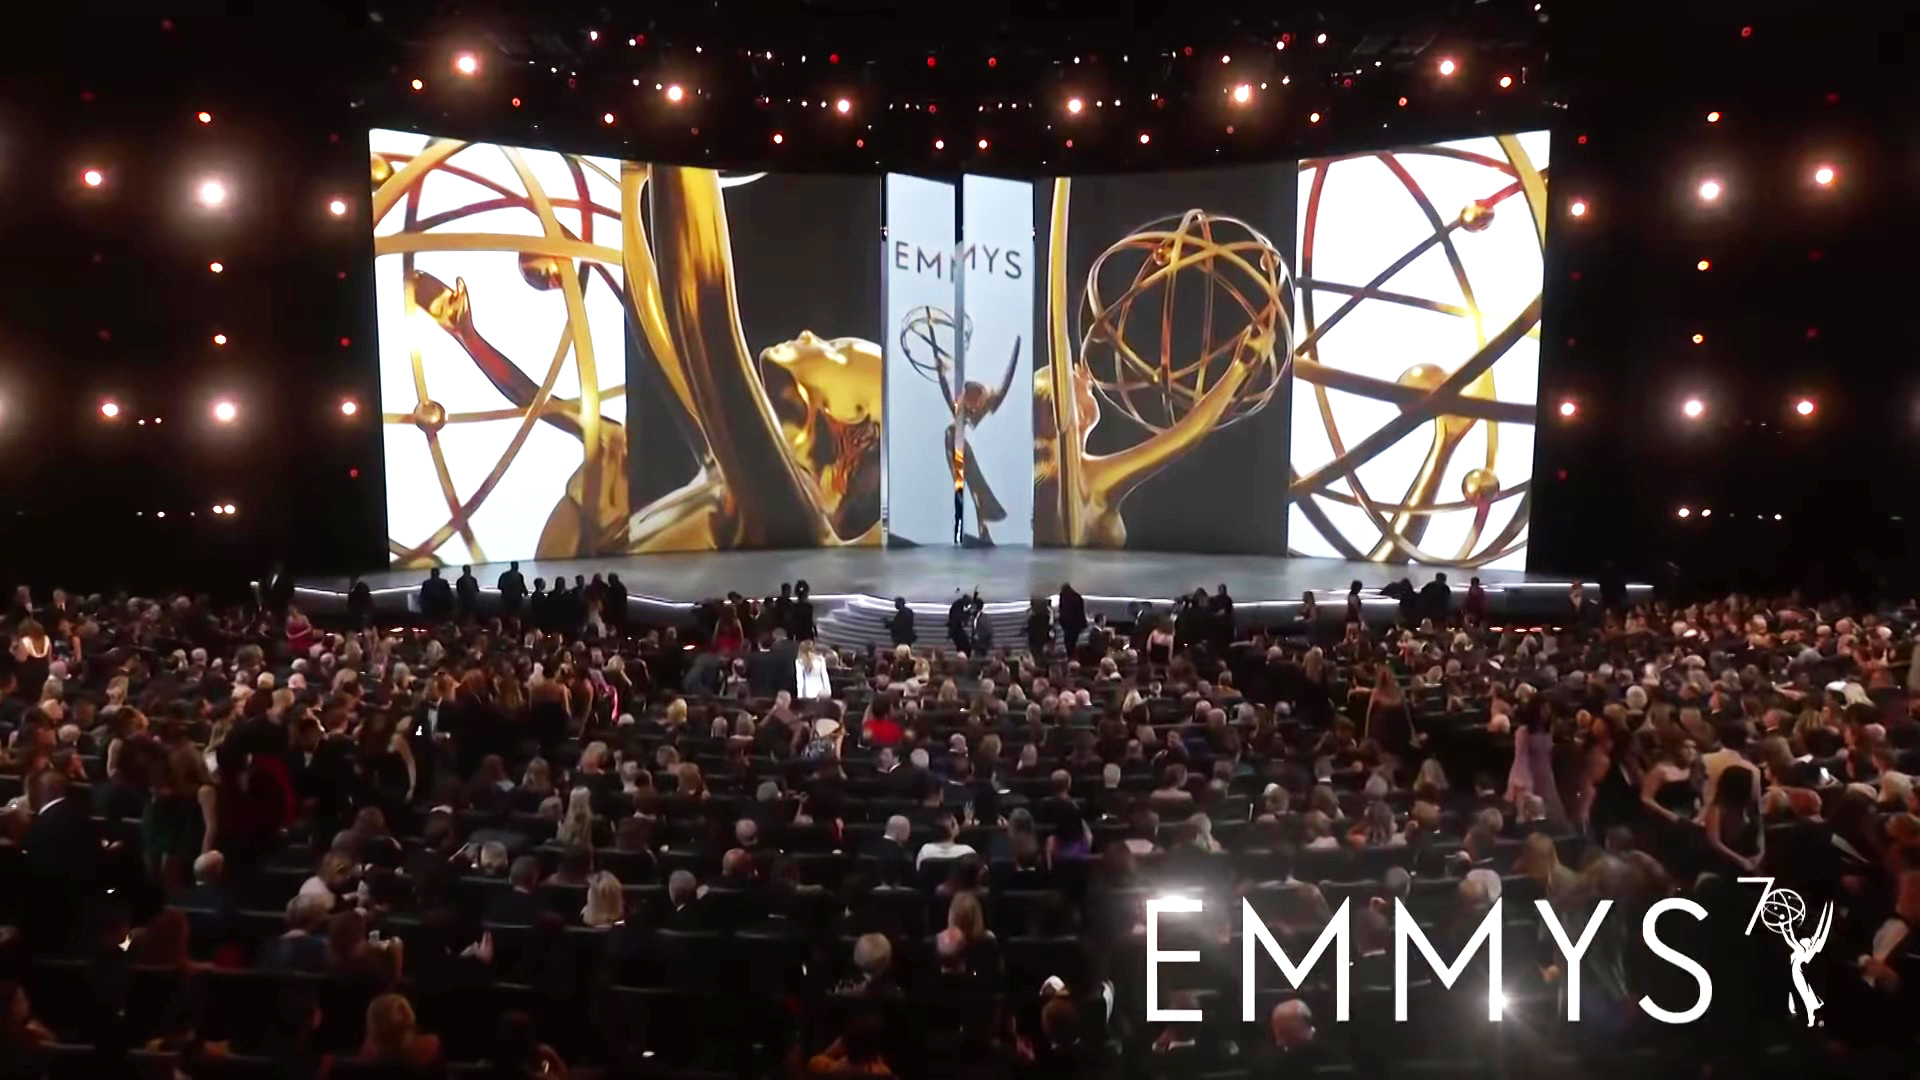 70th-Emmy-Awards-Academy-Chairmans-Remarks_Moment02_edited